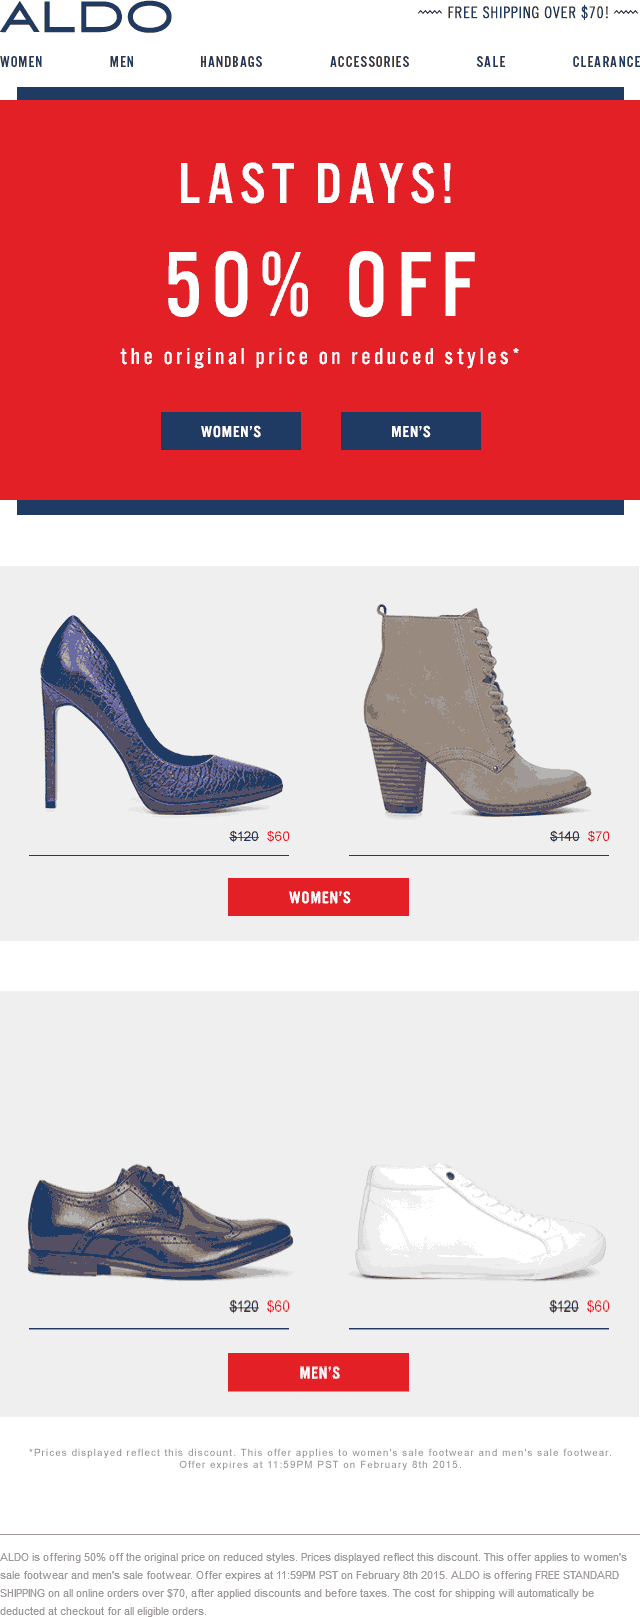 ALDO Coupon May 2018 Extra 50% off sale shoes at ALDO, ditto online